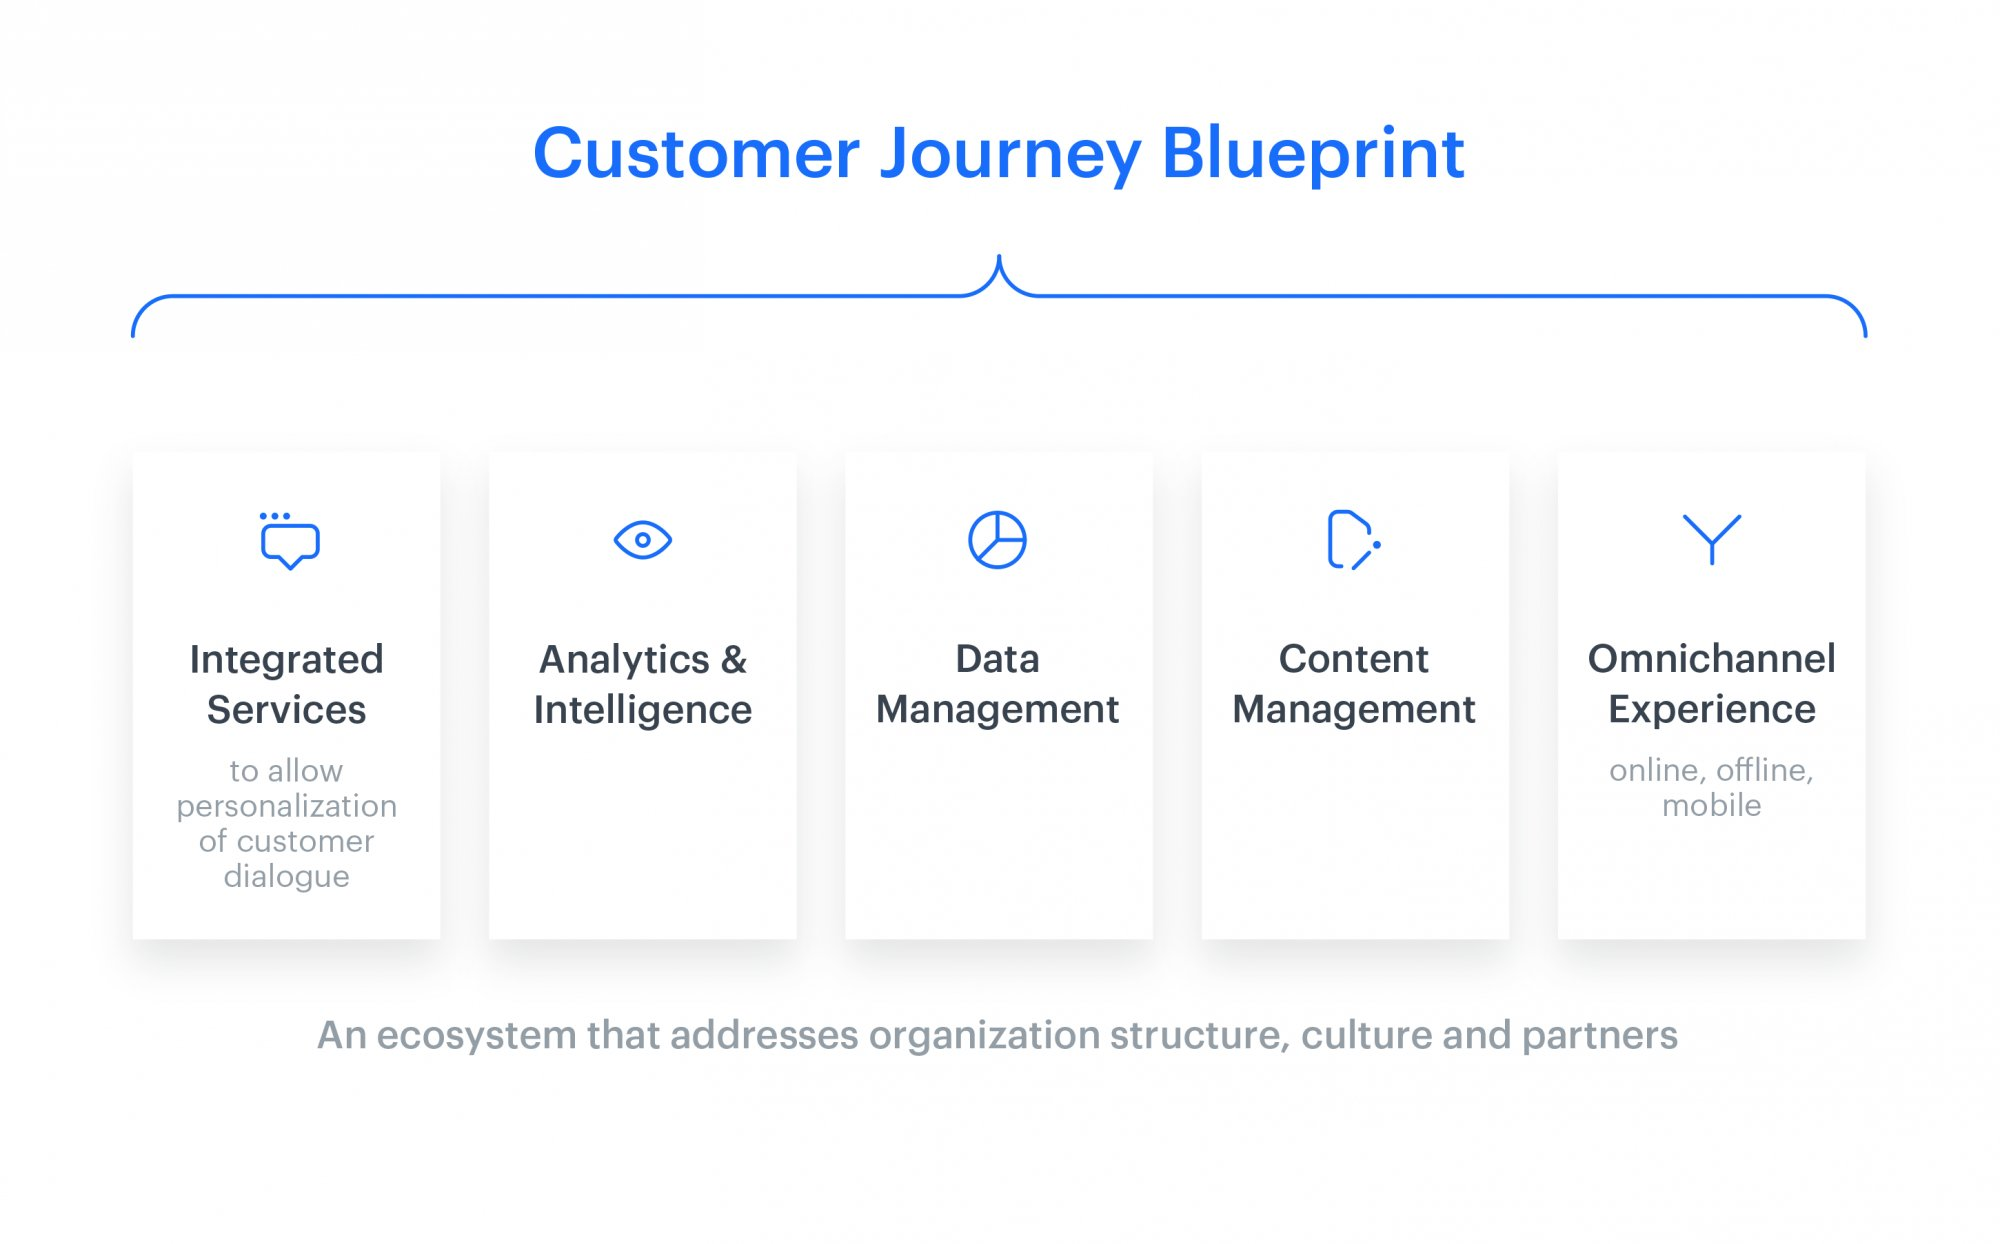 Customer journey blueprint, an ecosystem that addressess organization structure, culture and partners